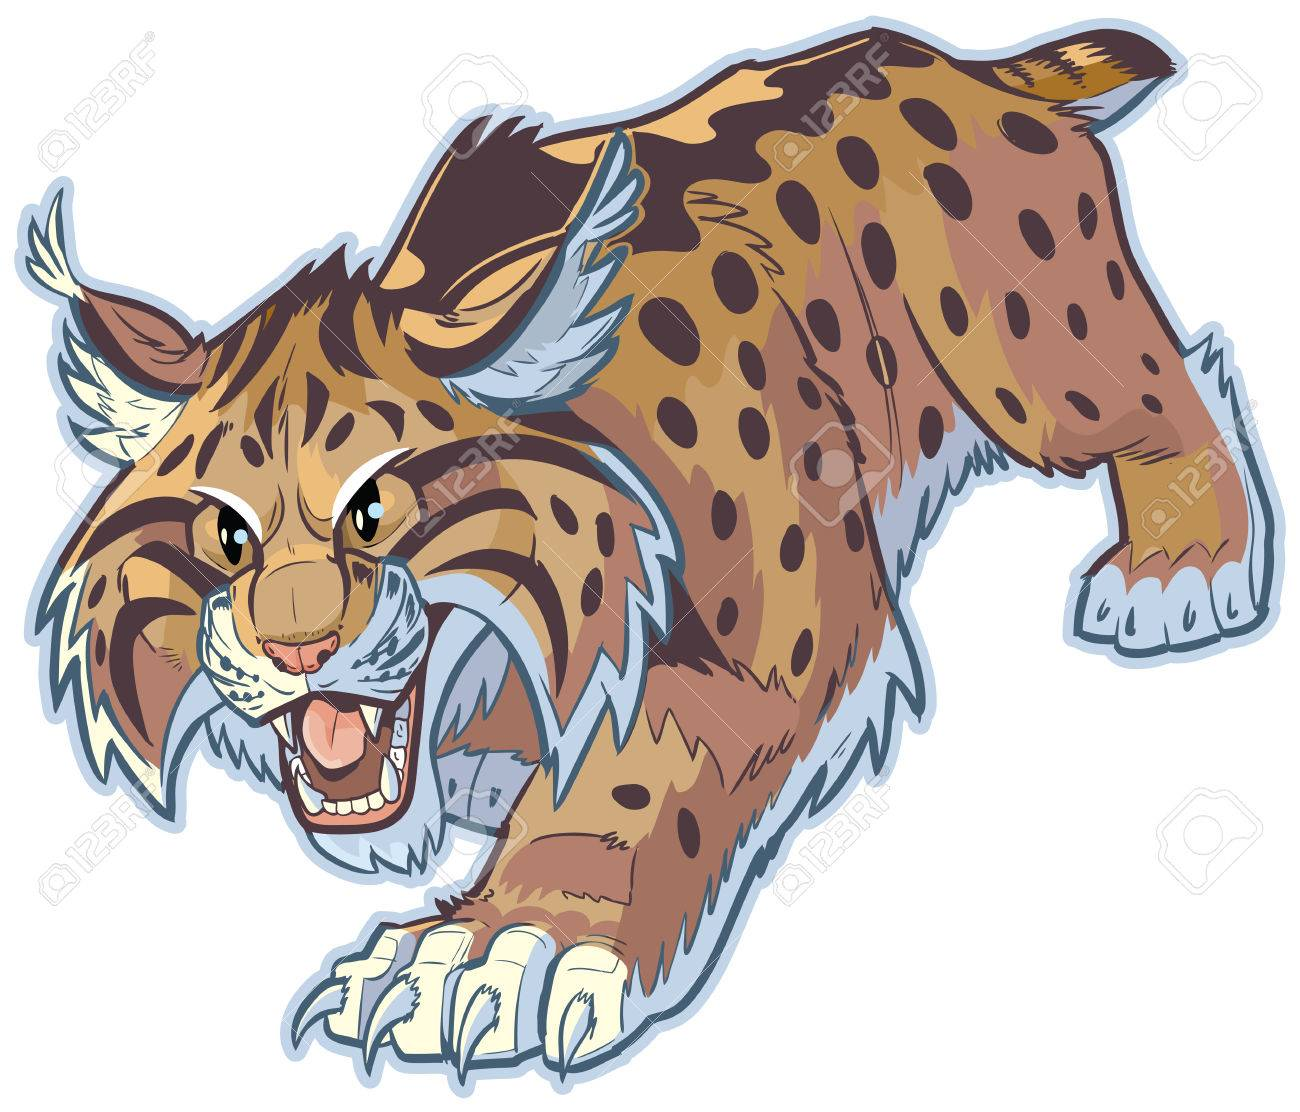 Vector cartoon clip art illustration of a hungry bobcat or wildcat...